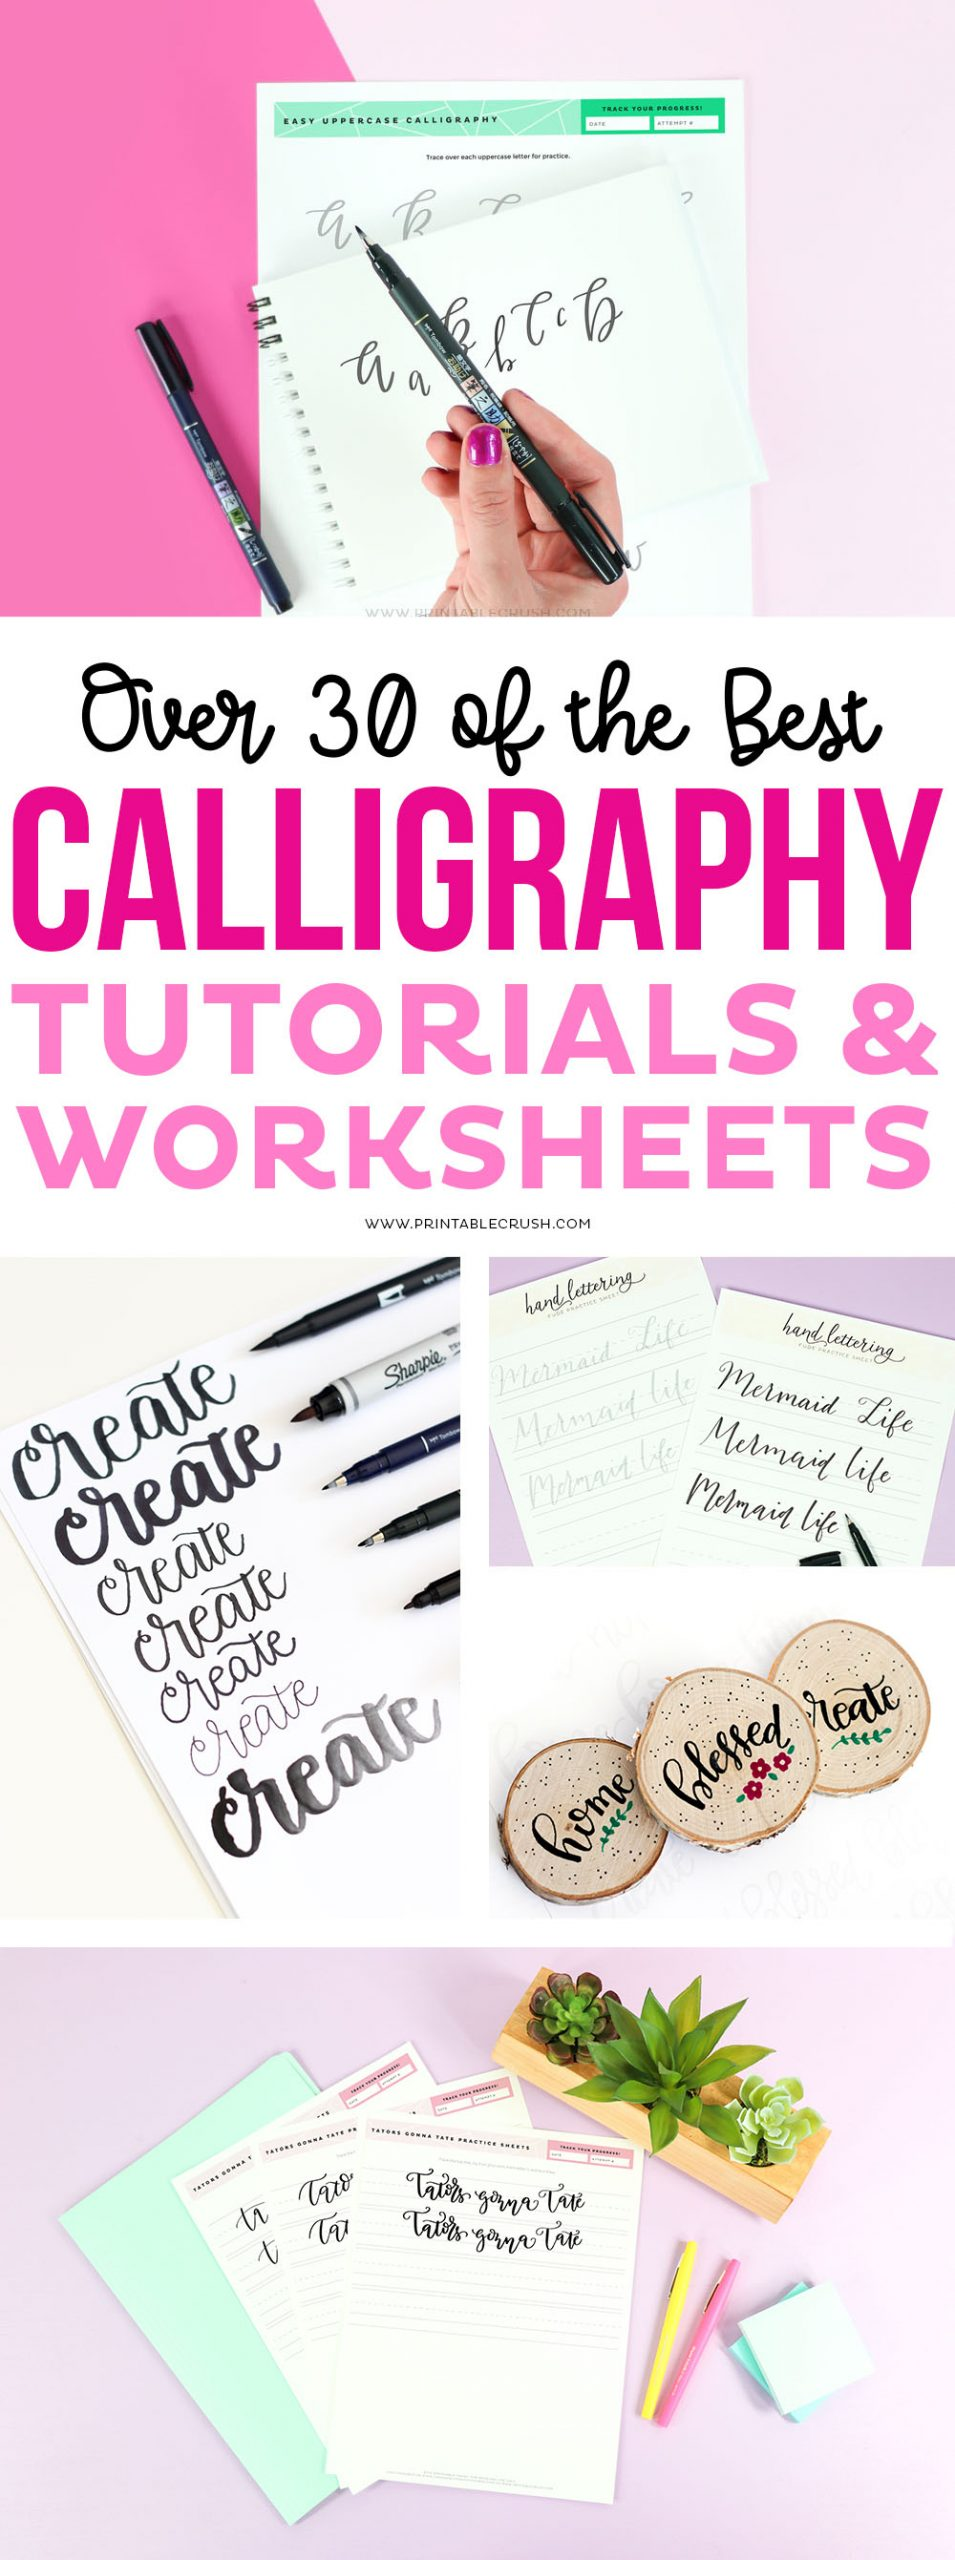 Over 30 of the Best Calligraphy Tutorials and Worksheets